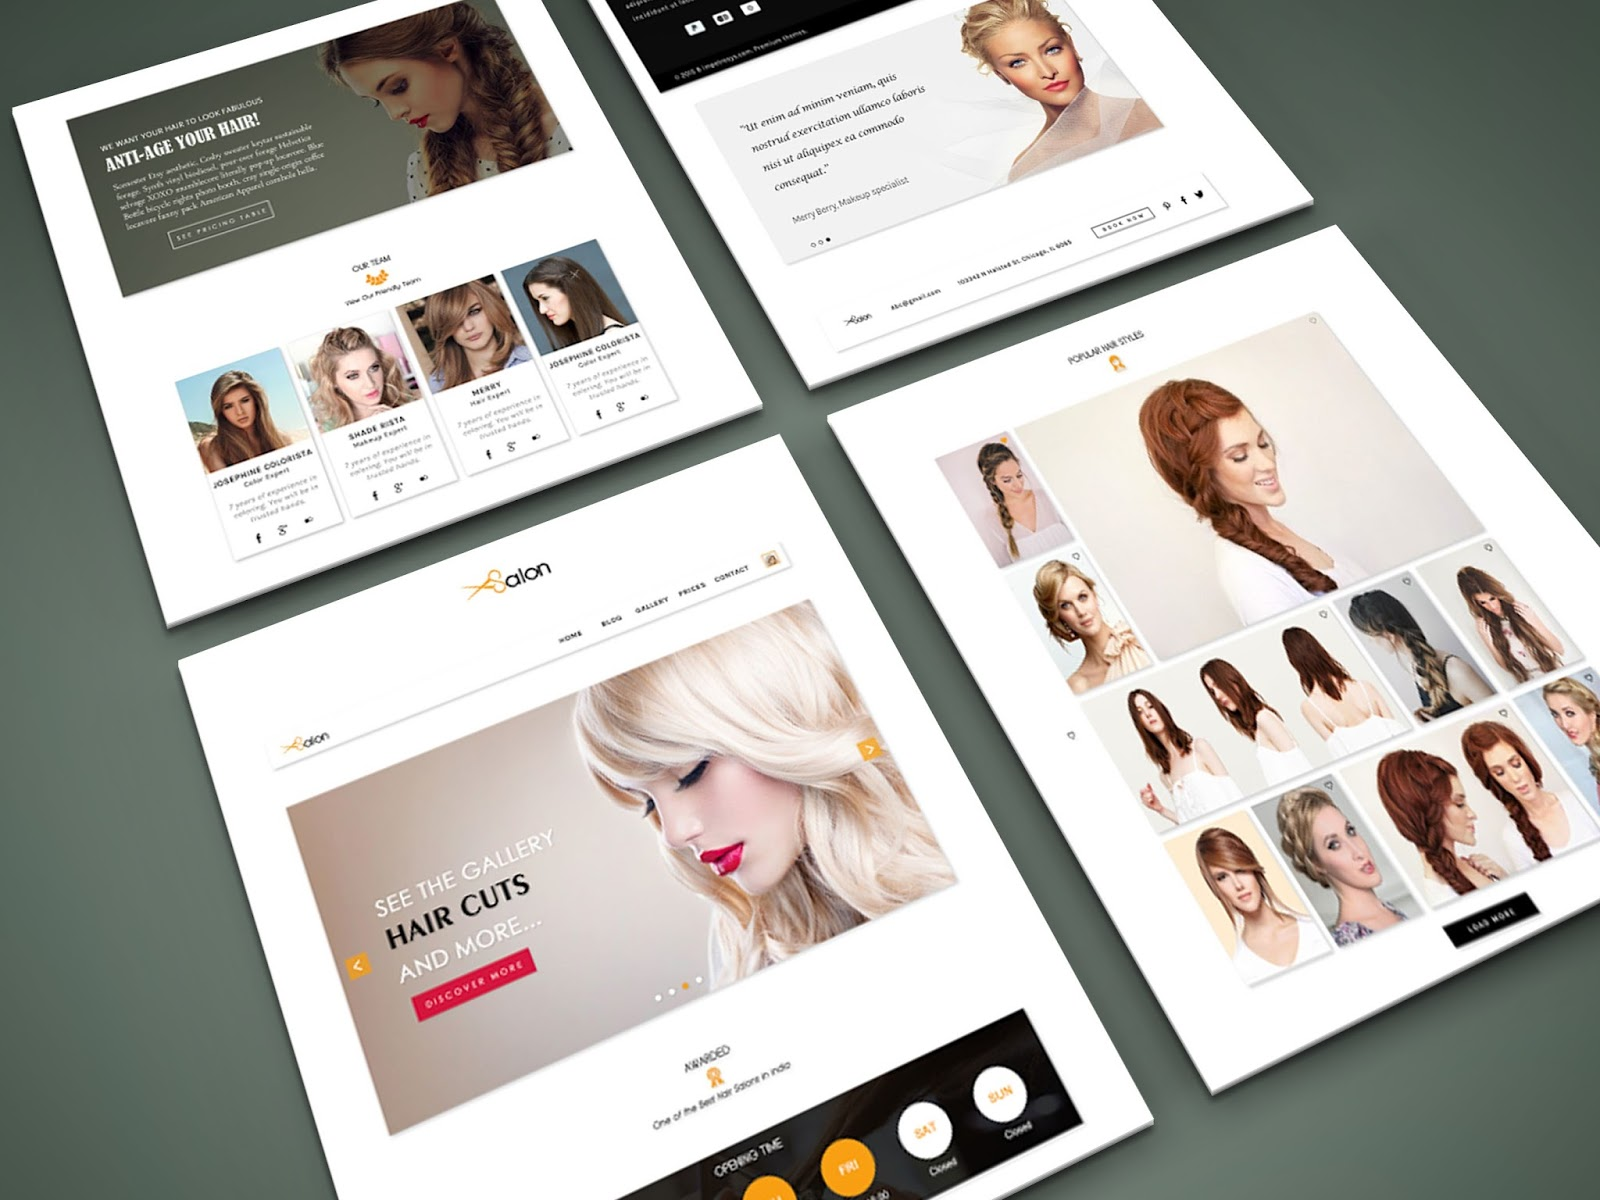 Creative Designs Idea Free   Creative Ideas For Designers Beauty Salon Website Template Design Idea